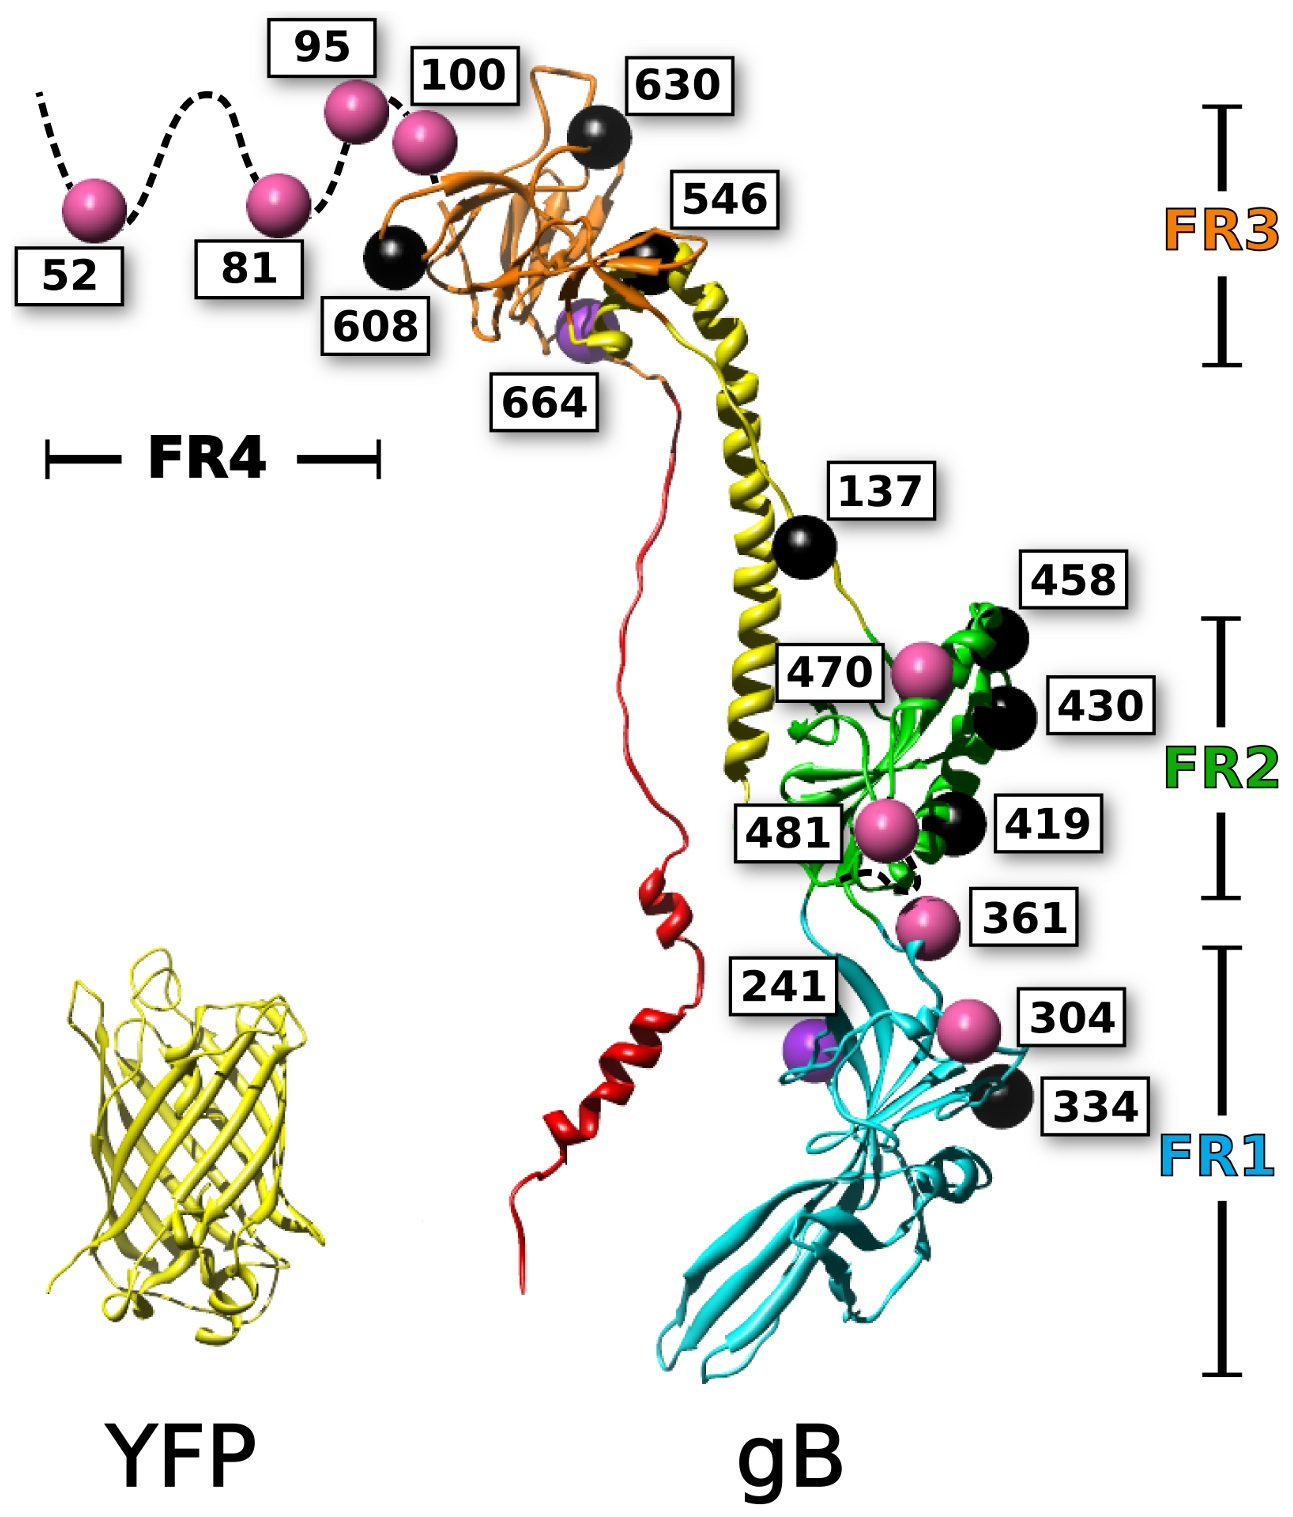 Mapping of fluorescent protein insertions on the gB crystal structure.